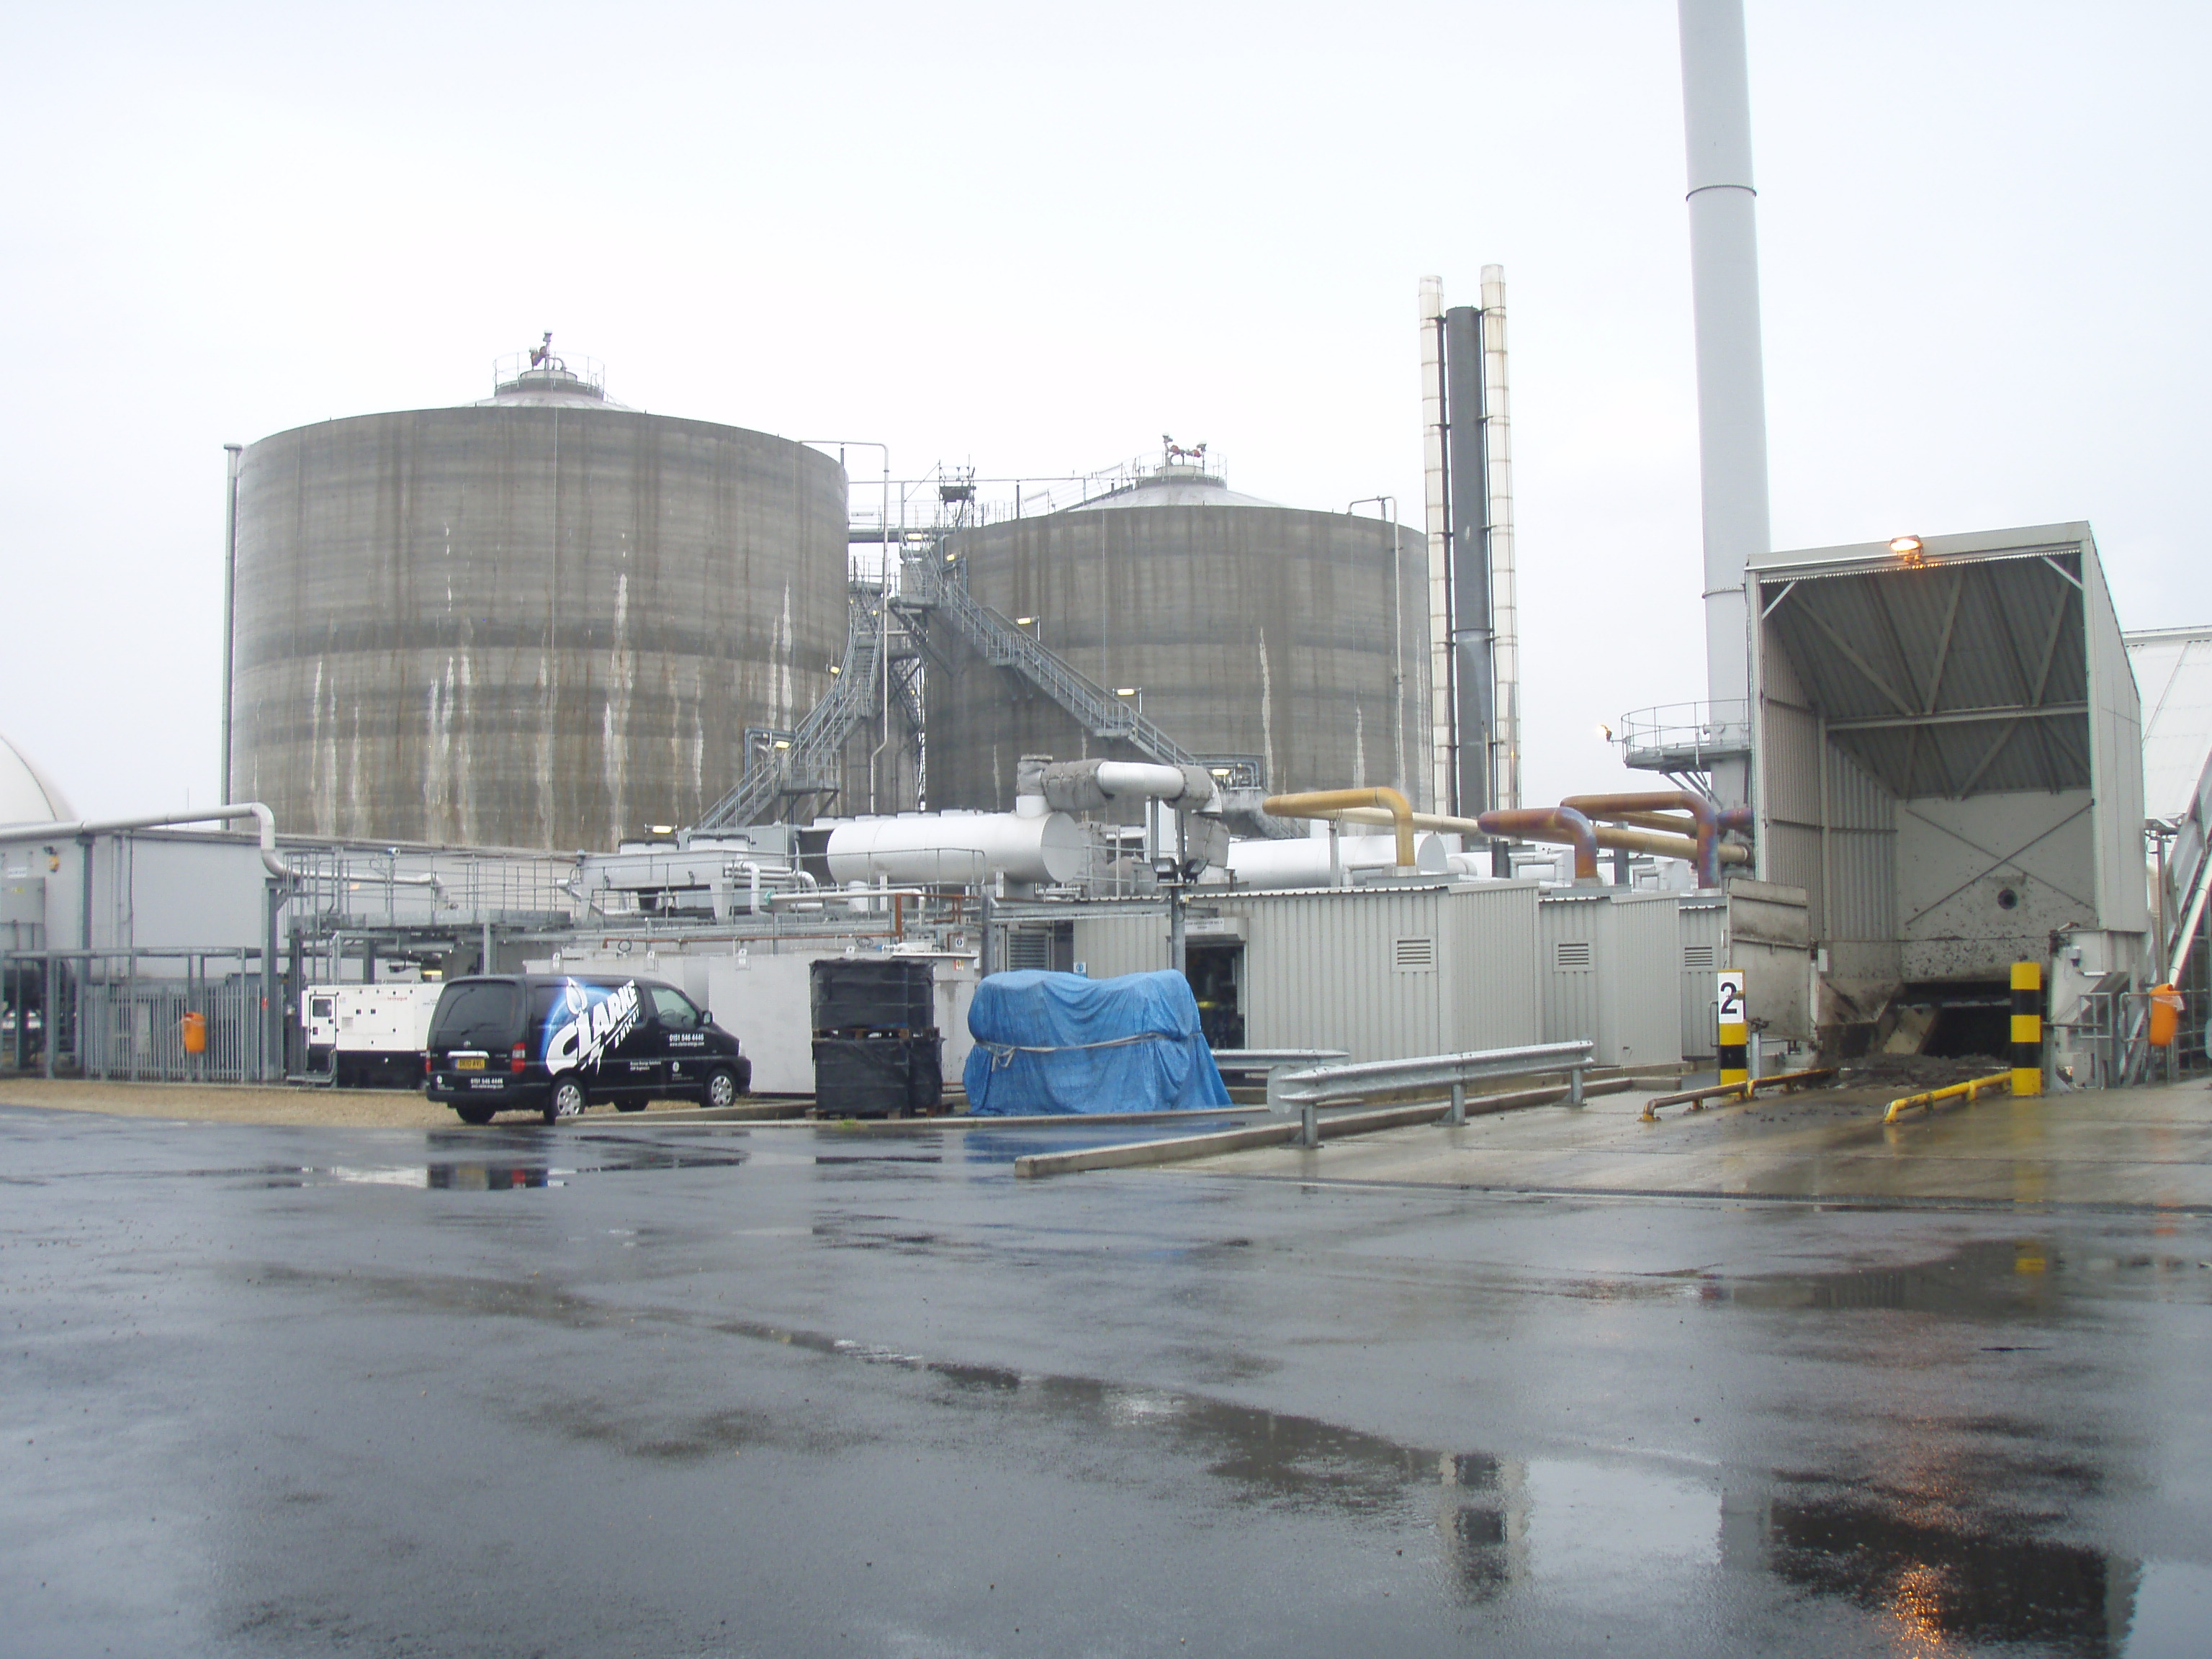 Anaerobic digestion (AD) plant at Bran Sands